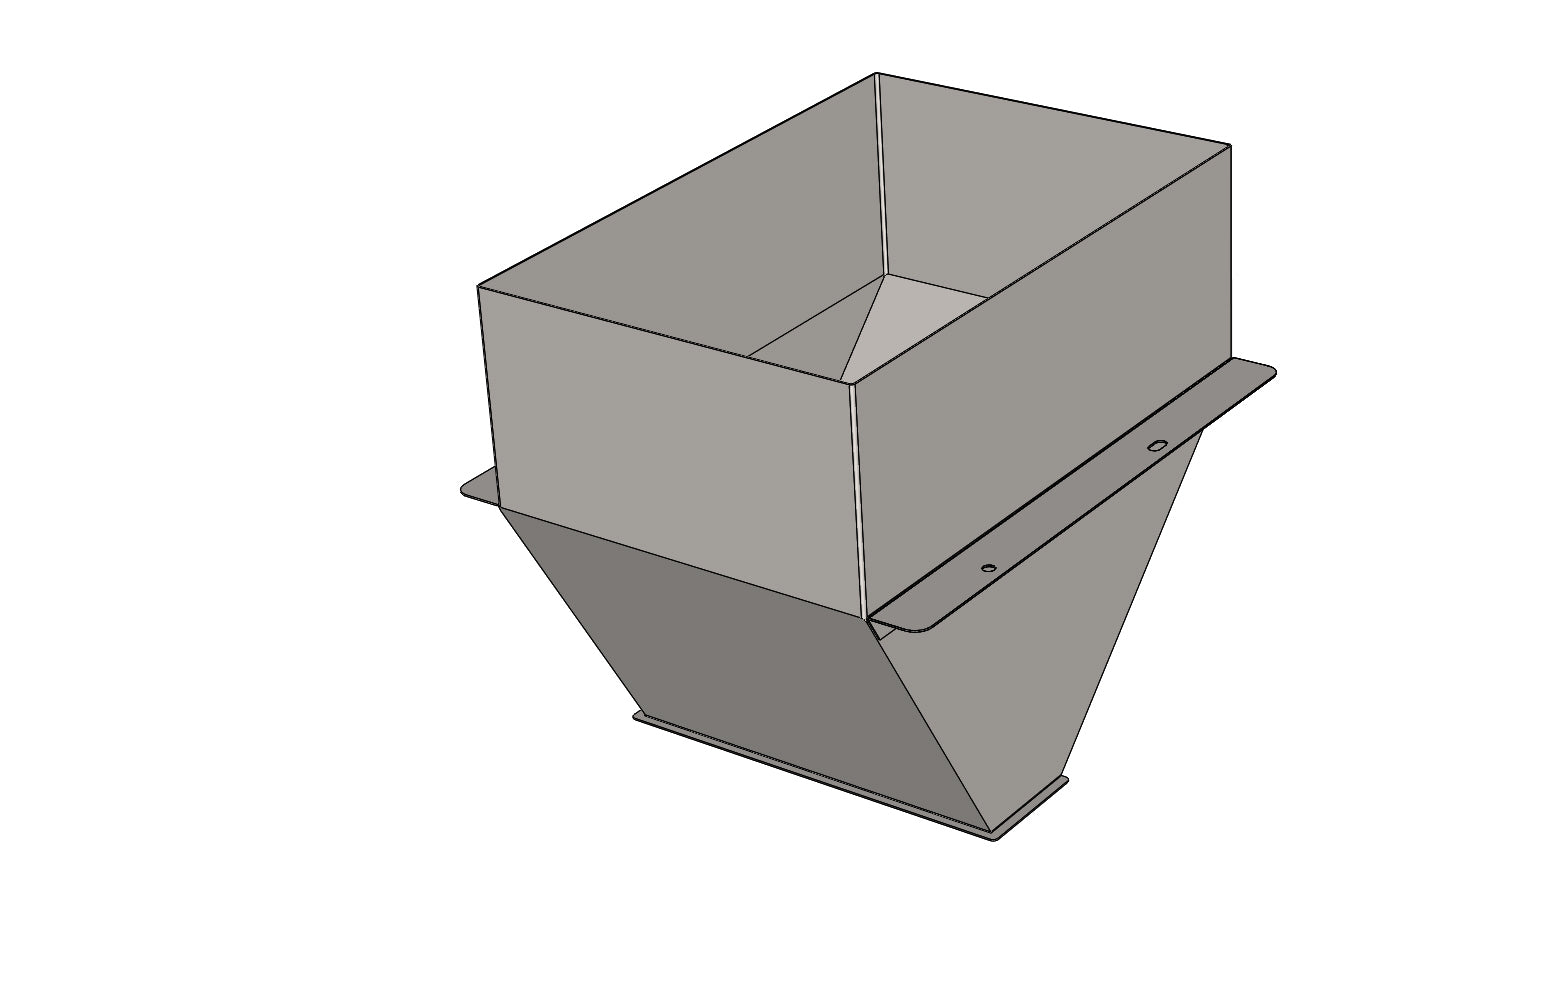 TC 6271682A - HOPPER LARGE CAPACITY | Spare Parts for King, Kalish and Swiftpack Packaging Machines